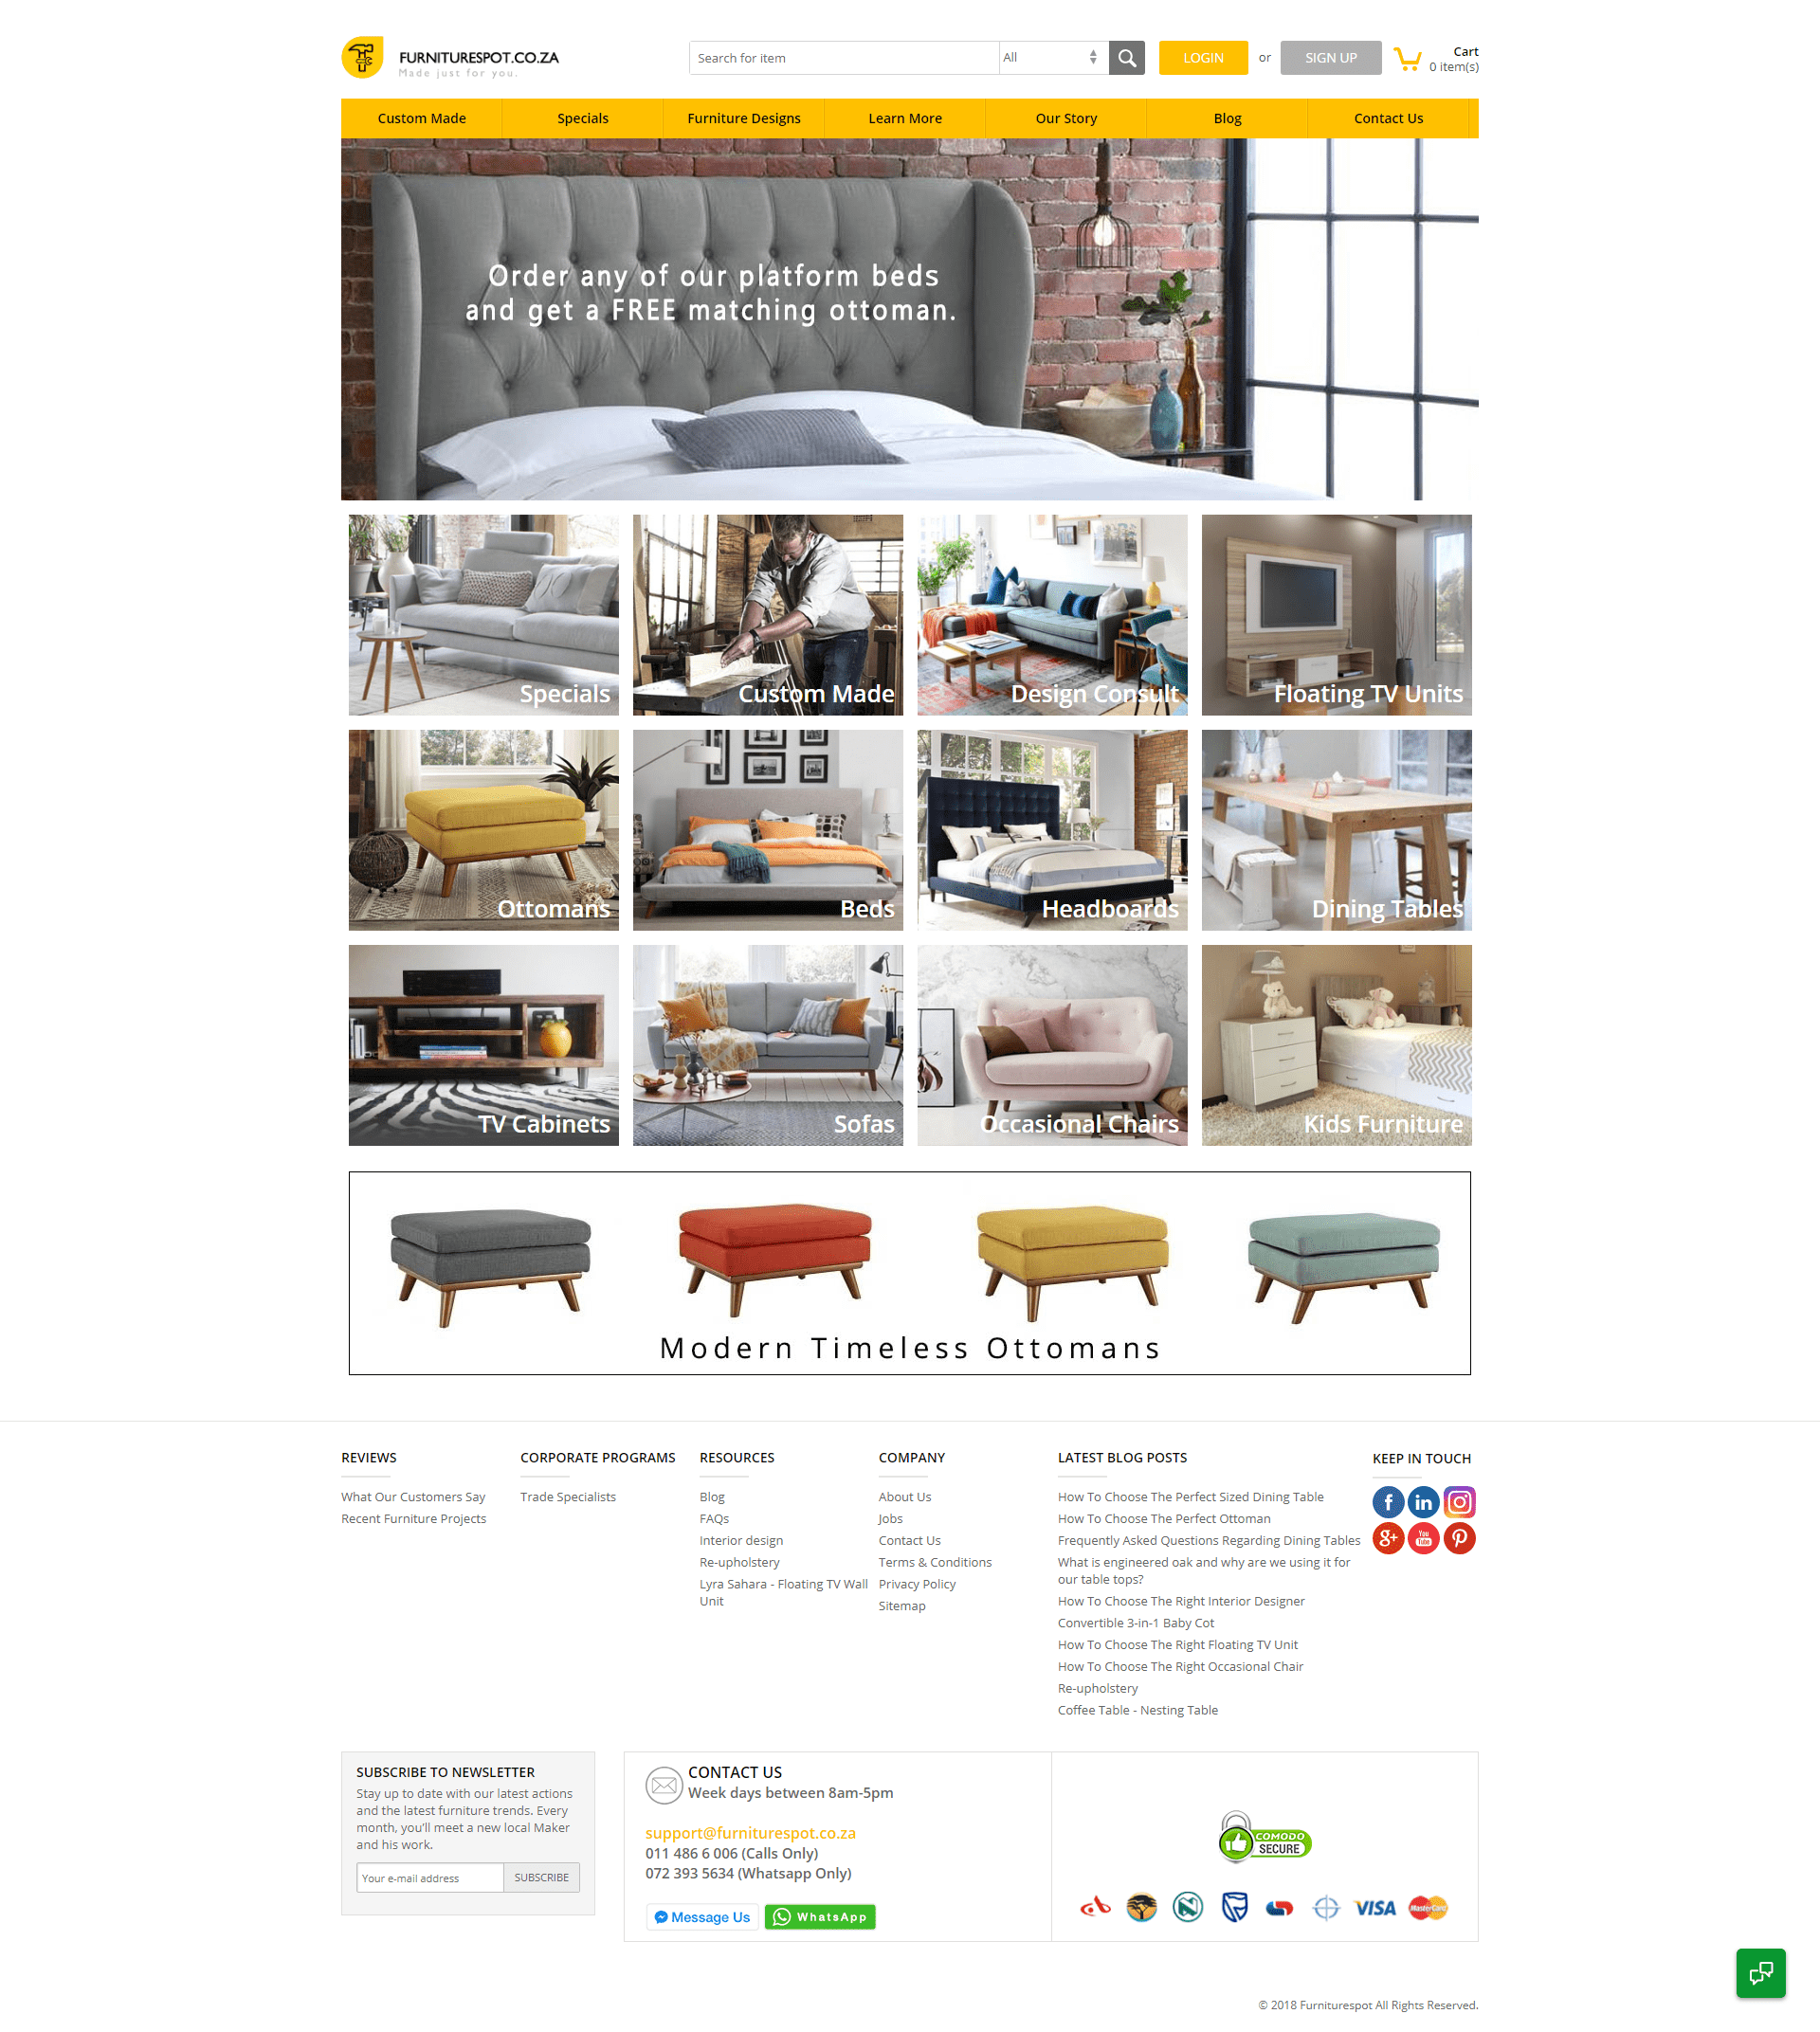 fabb sofas opens debut store and launches website interior website Furniture Spot is a custom-made furniture marketplace. This website aims to  provide talented furniture designers a place to showcase their talent.